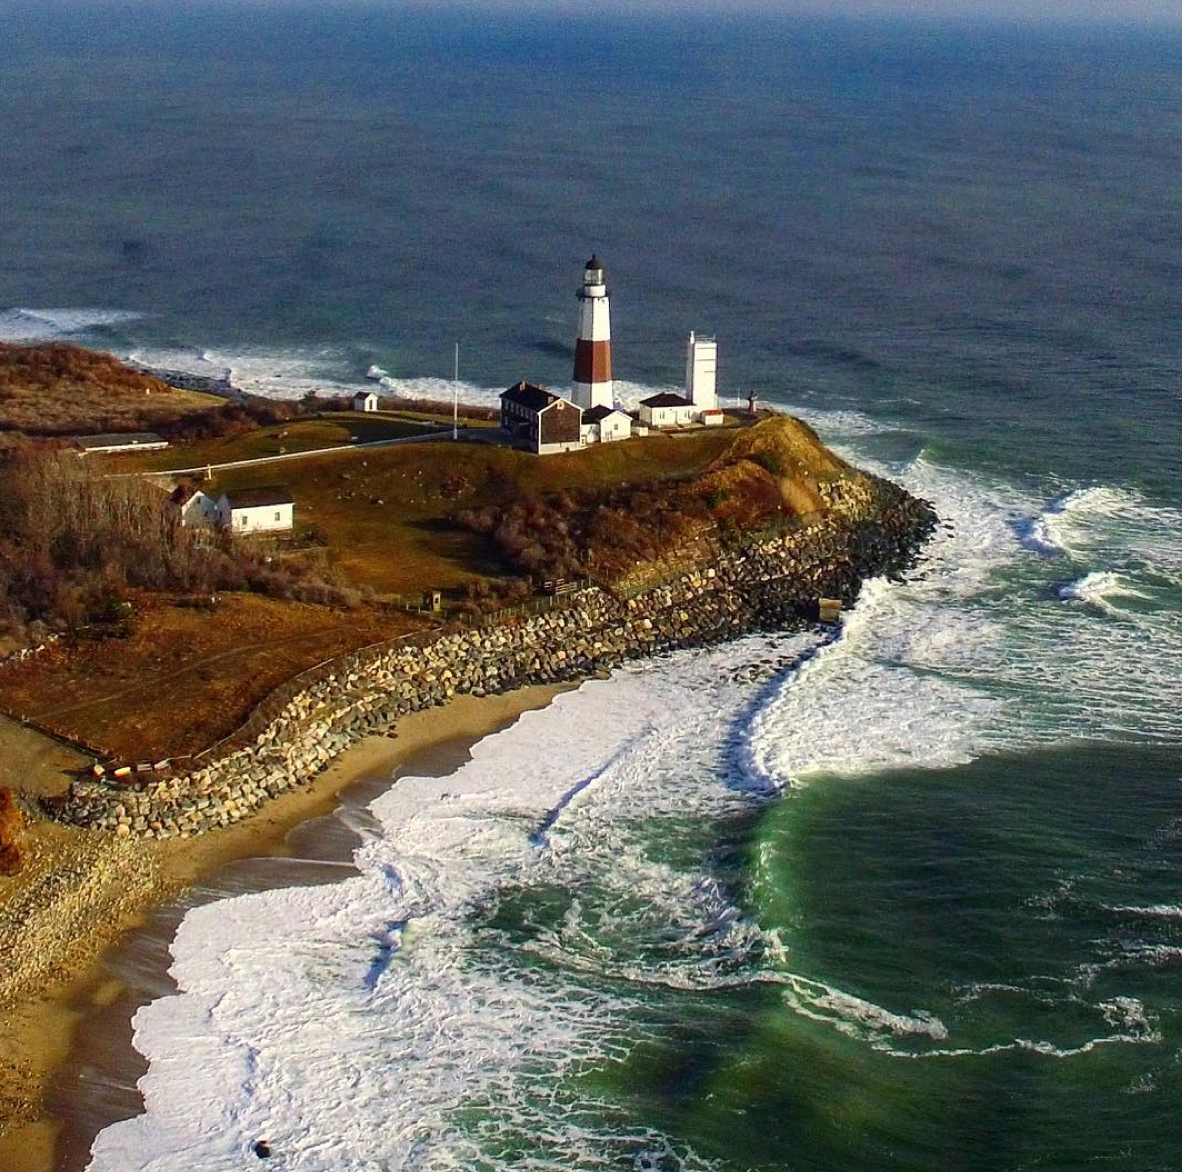 The Montauk Point Lighthouse is the oldest in the state of New York.